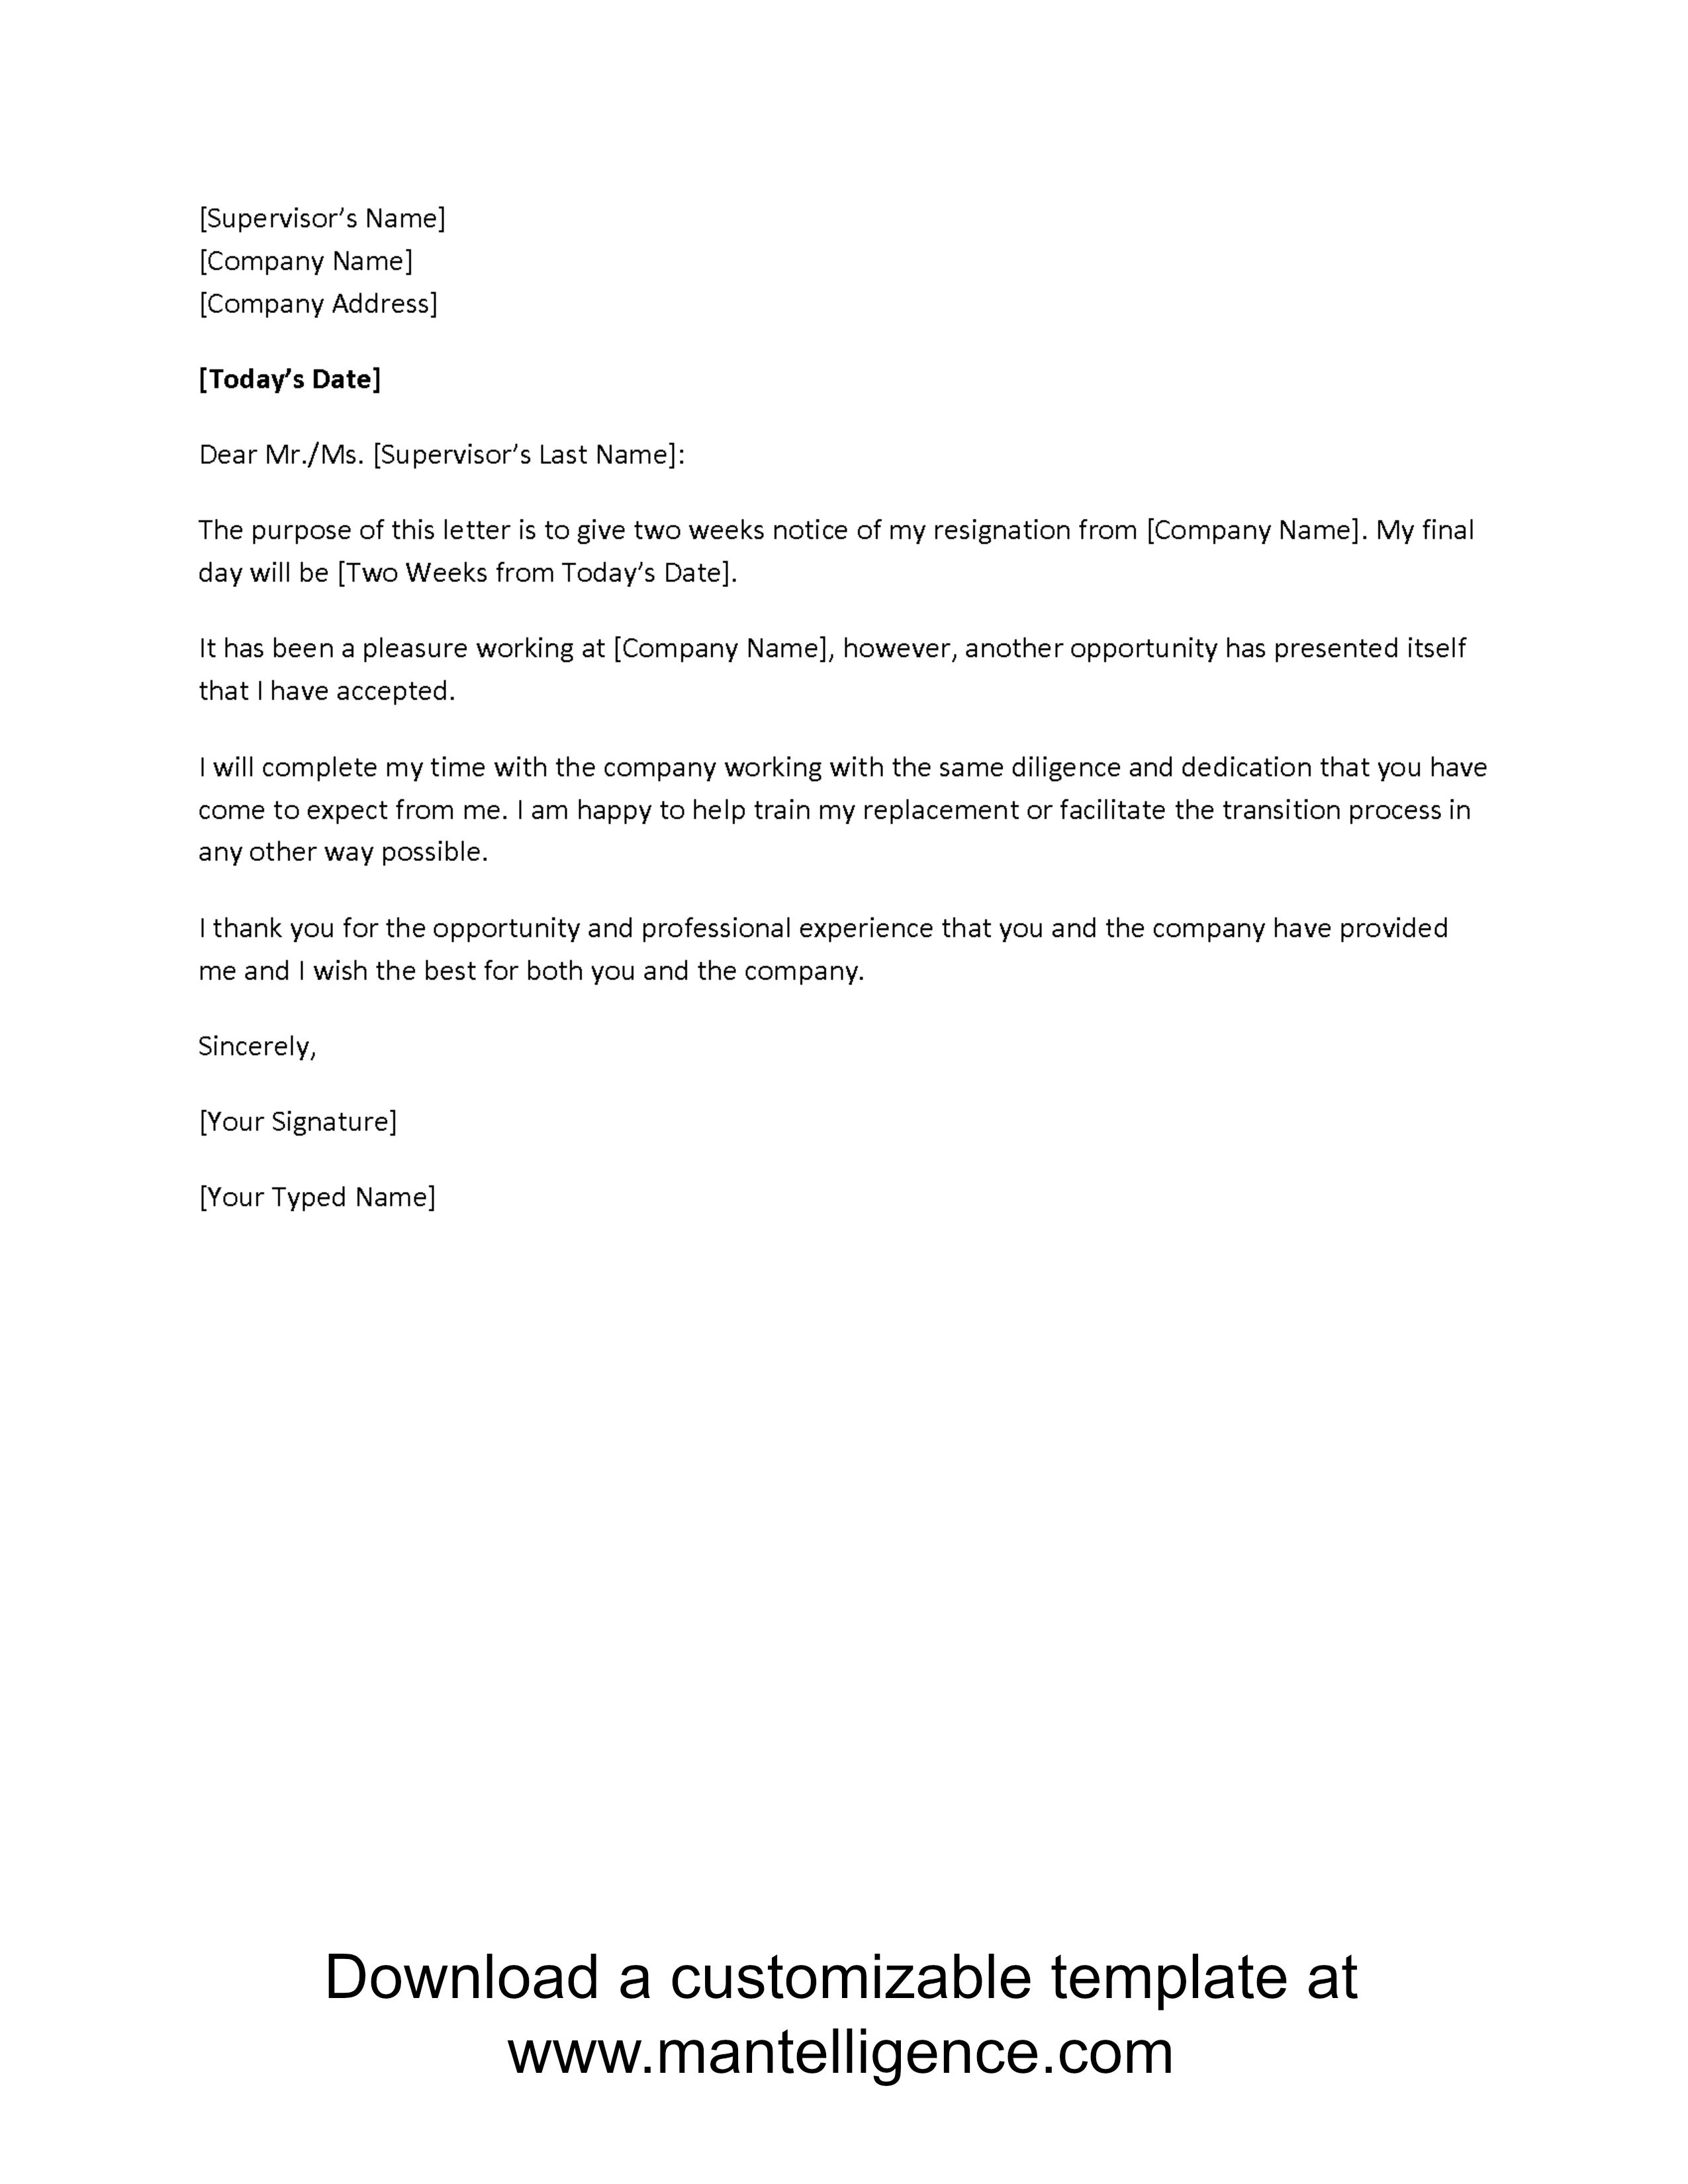 Goodbye Letter to Addiction Template - 3 Highly Professional Two Weeks Notice Letter Templates